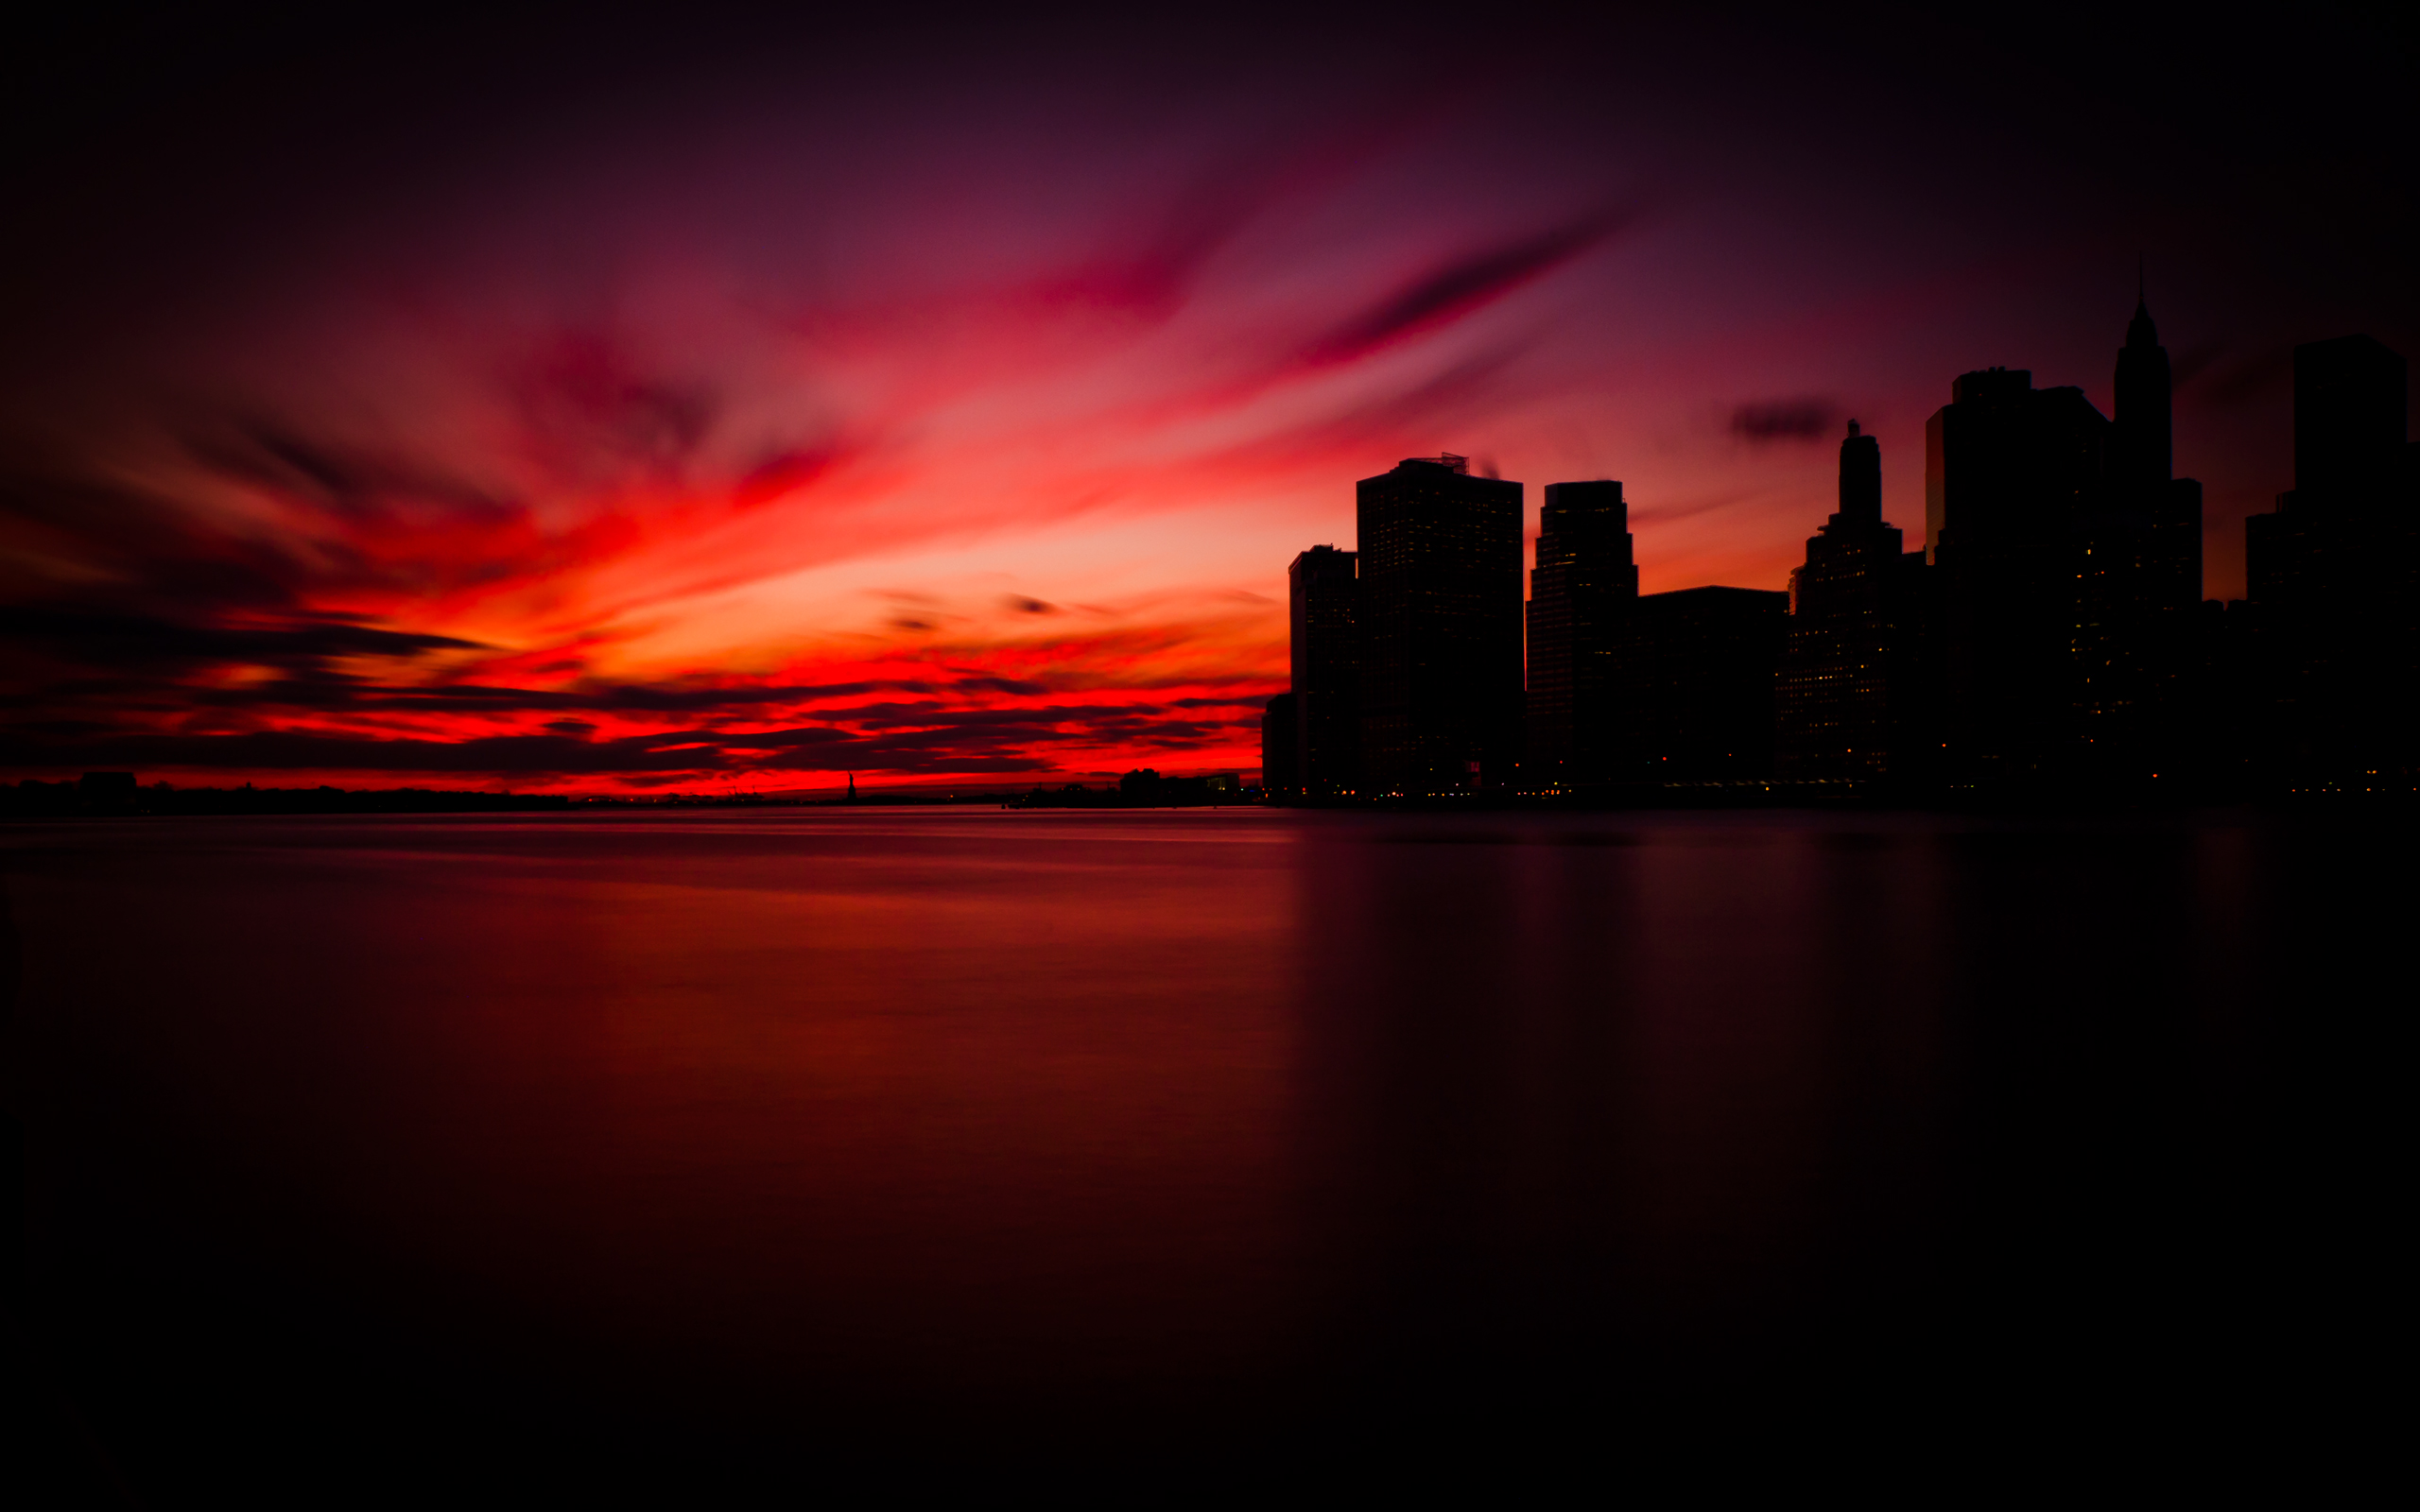 Sunset in Manhattan7435713876 - Sunset in Manhattan - sunset, Olympic, Manhattan